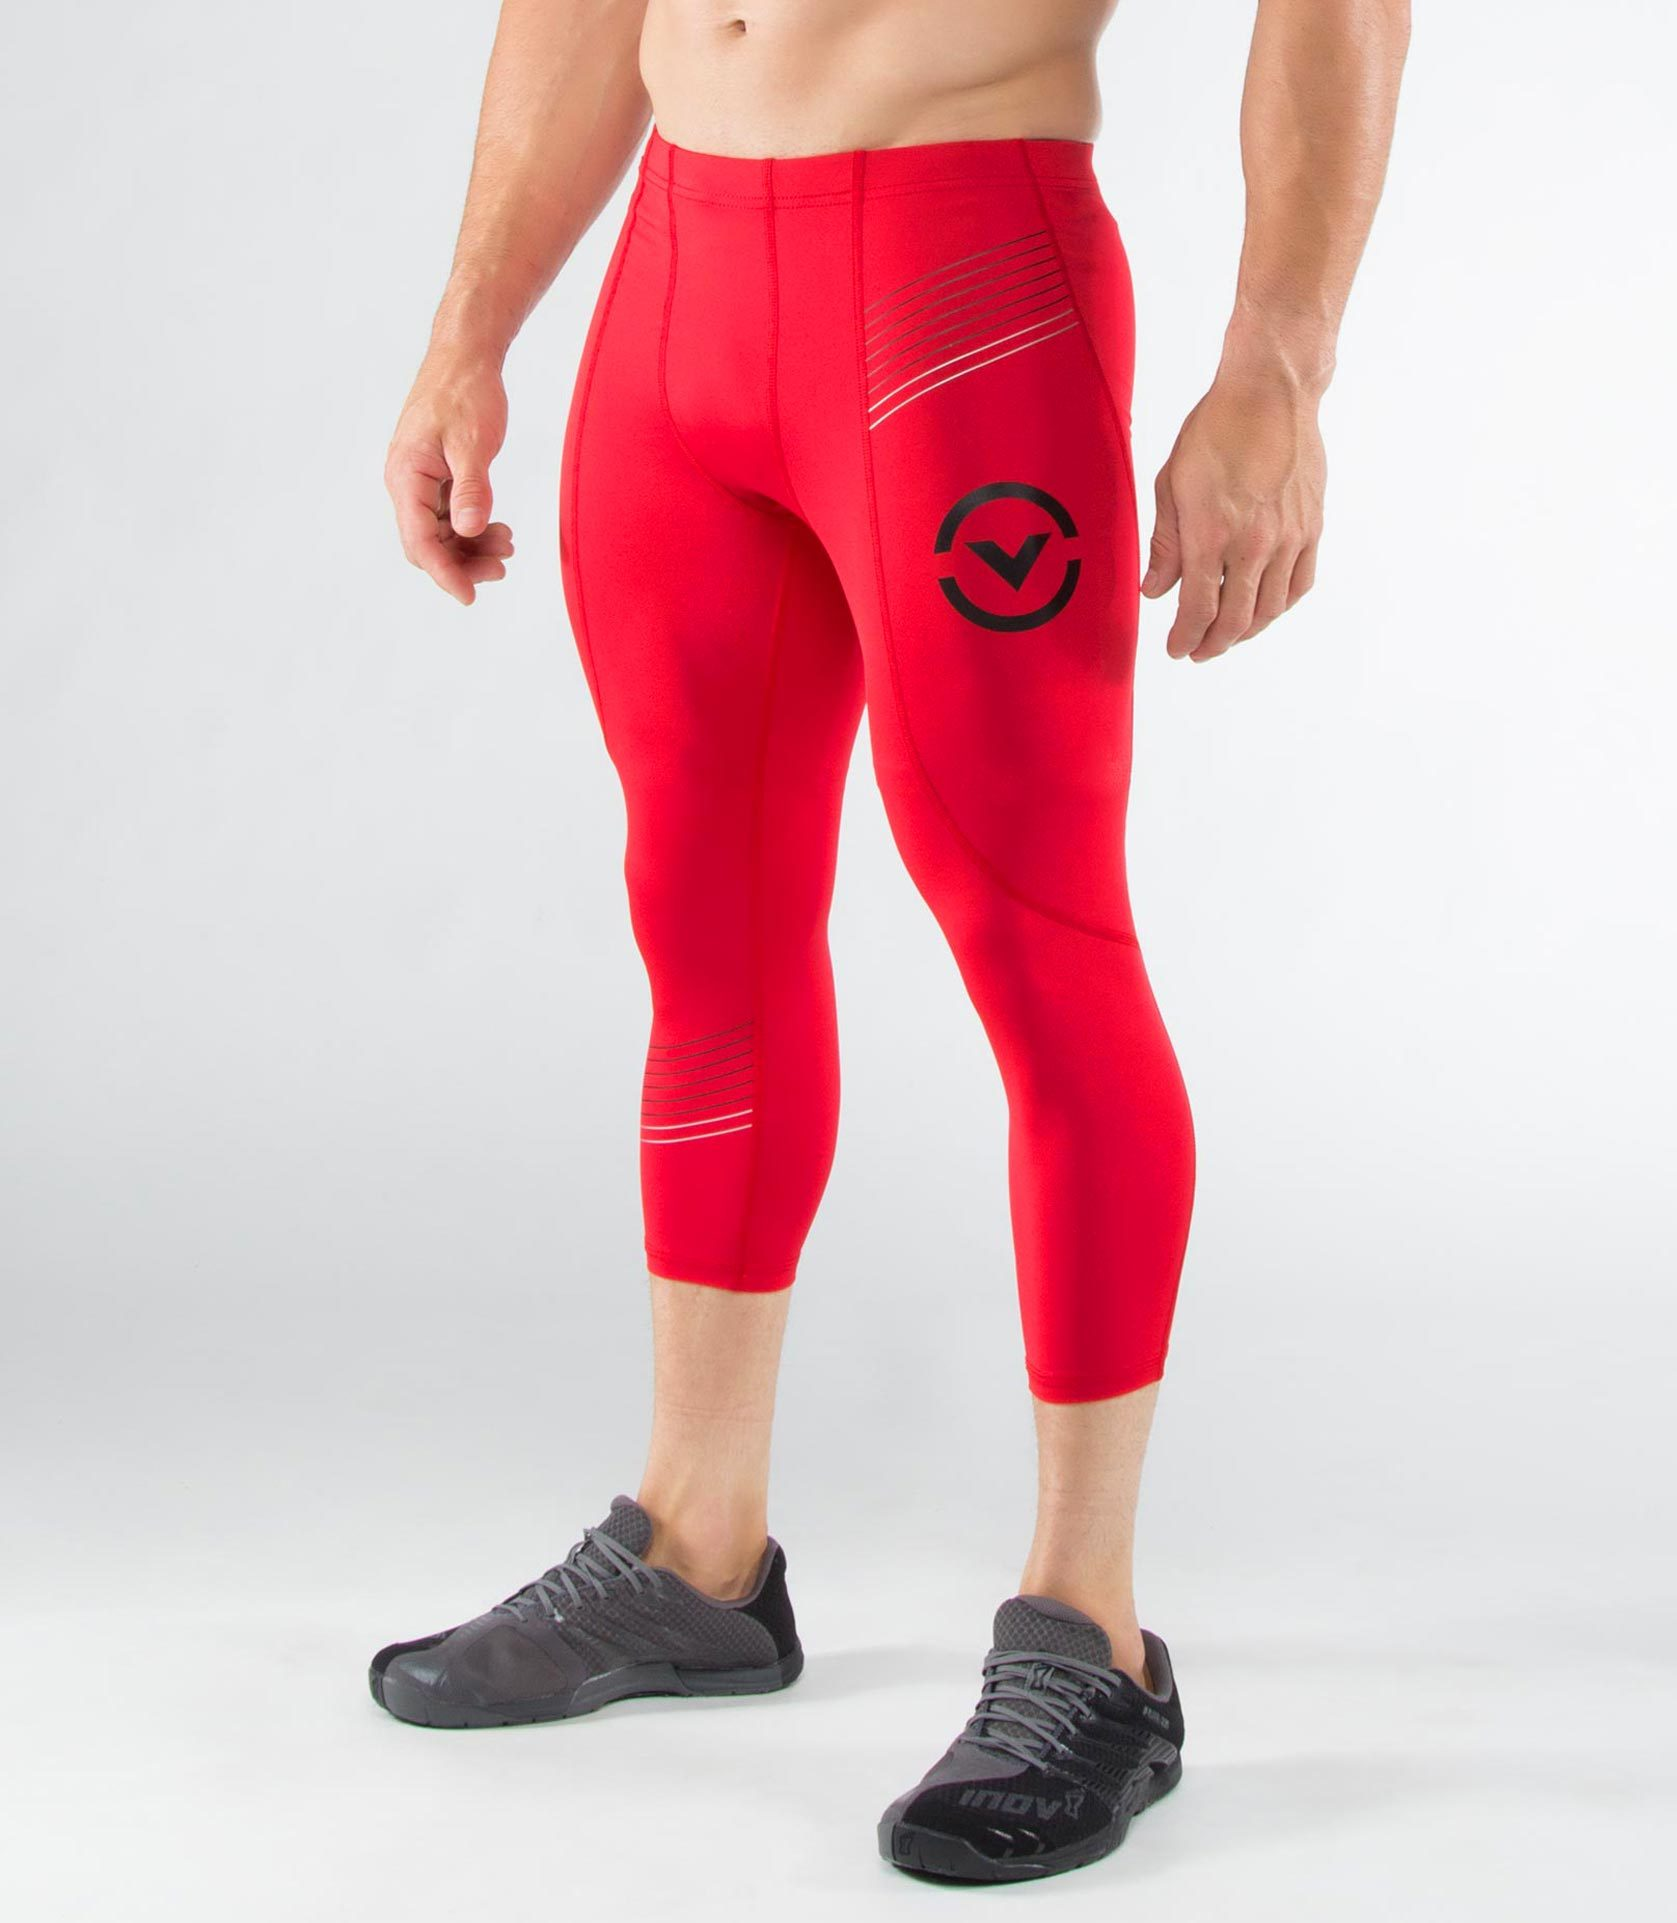 Comfort and defender men's compression tights